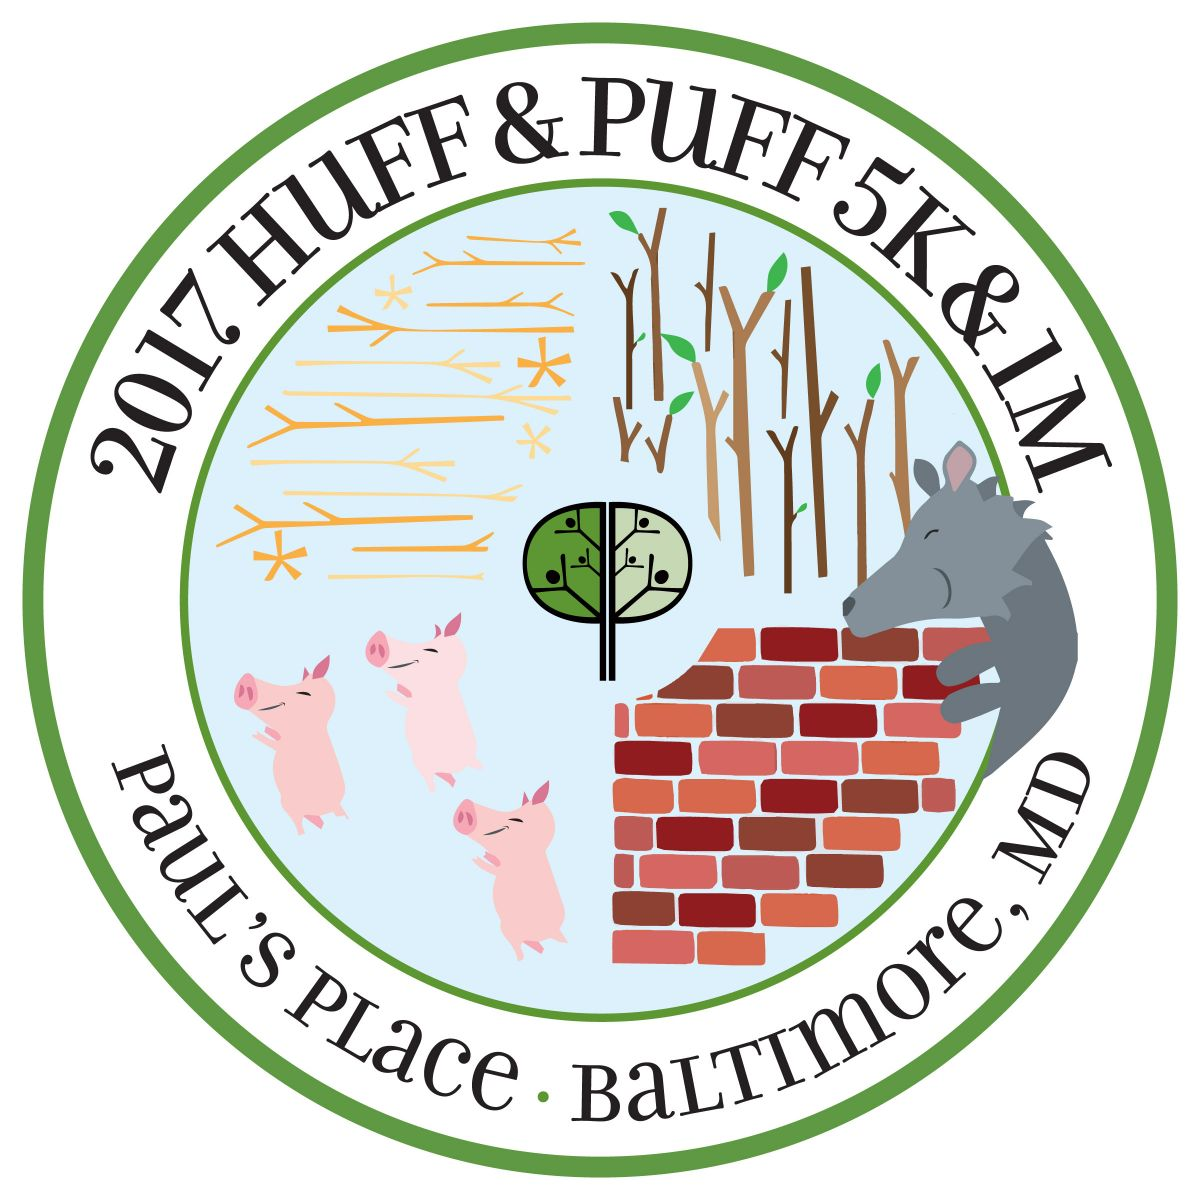 fa2b428e430 Huff & Puff 5K & 1M: Take One More Step for Paul's Place!